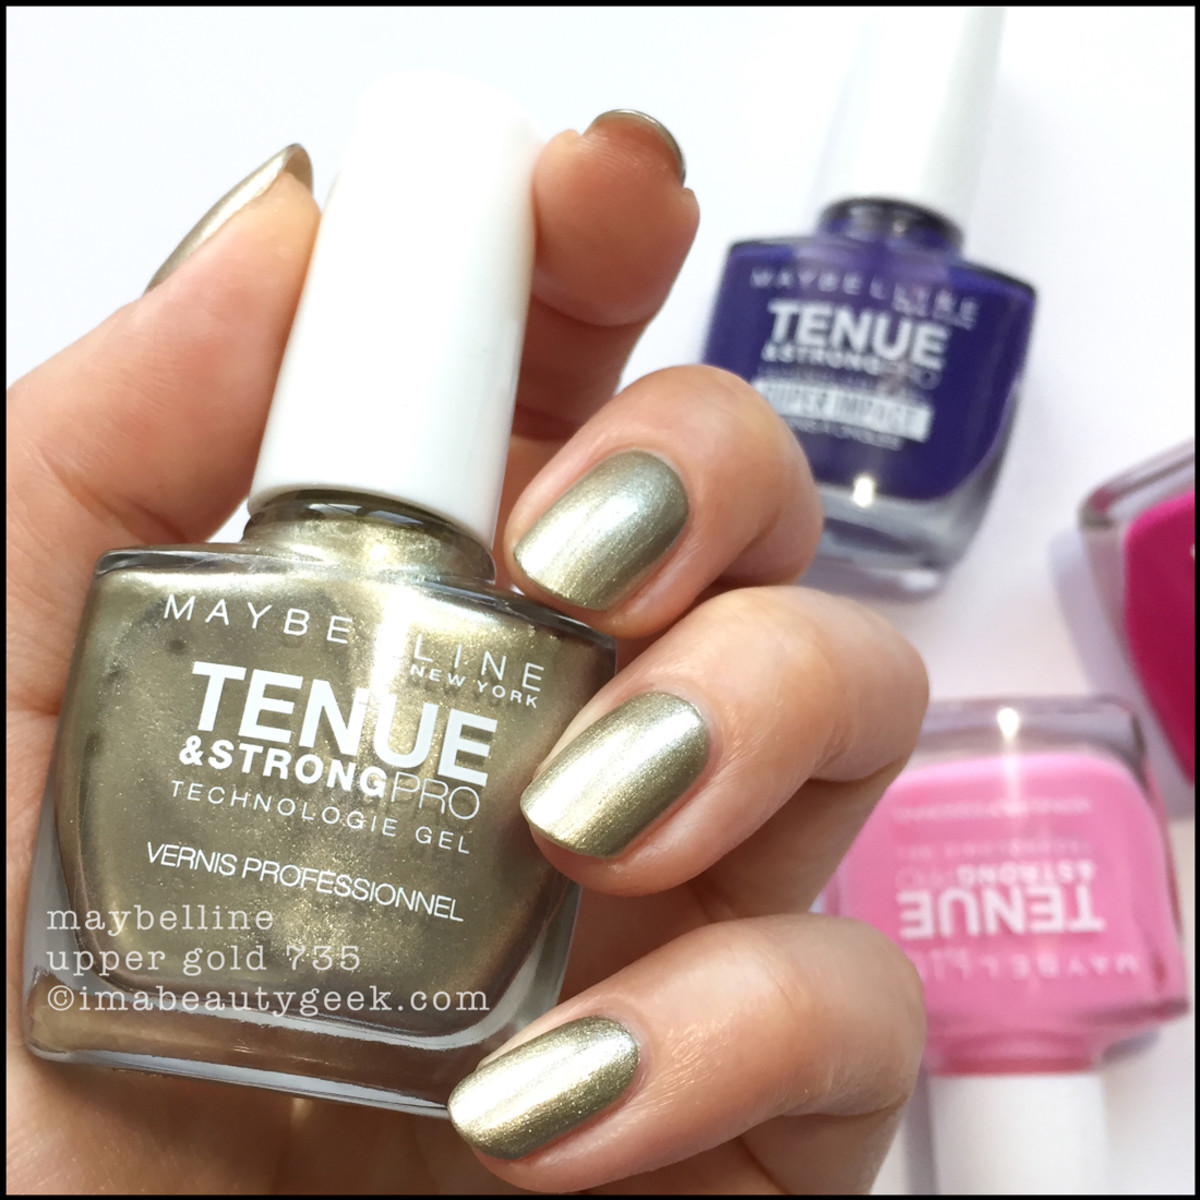 Maybelline Upper Gold 735 Tenue Strong Pro Nail Polish